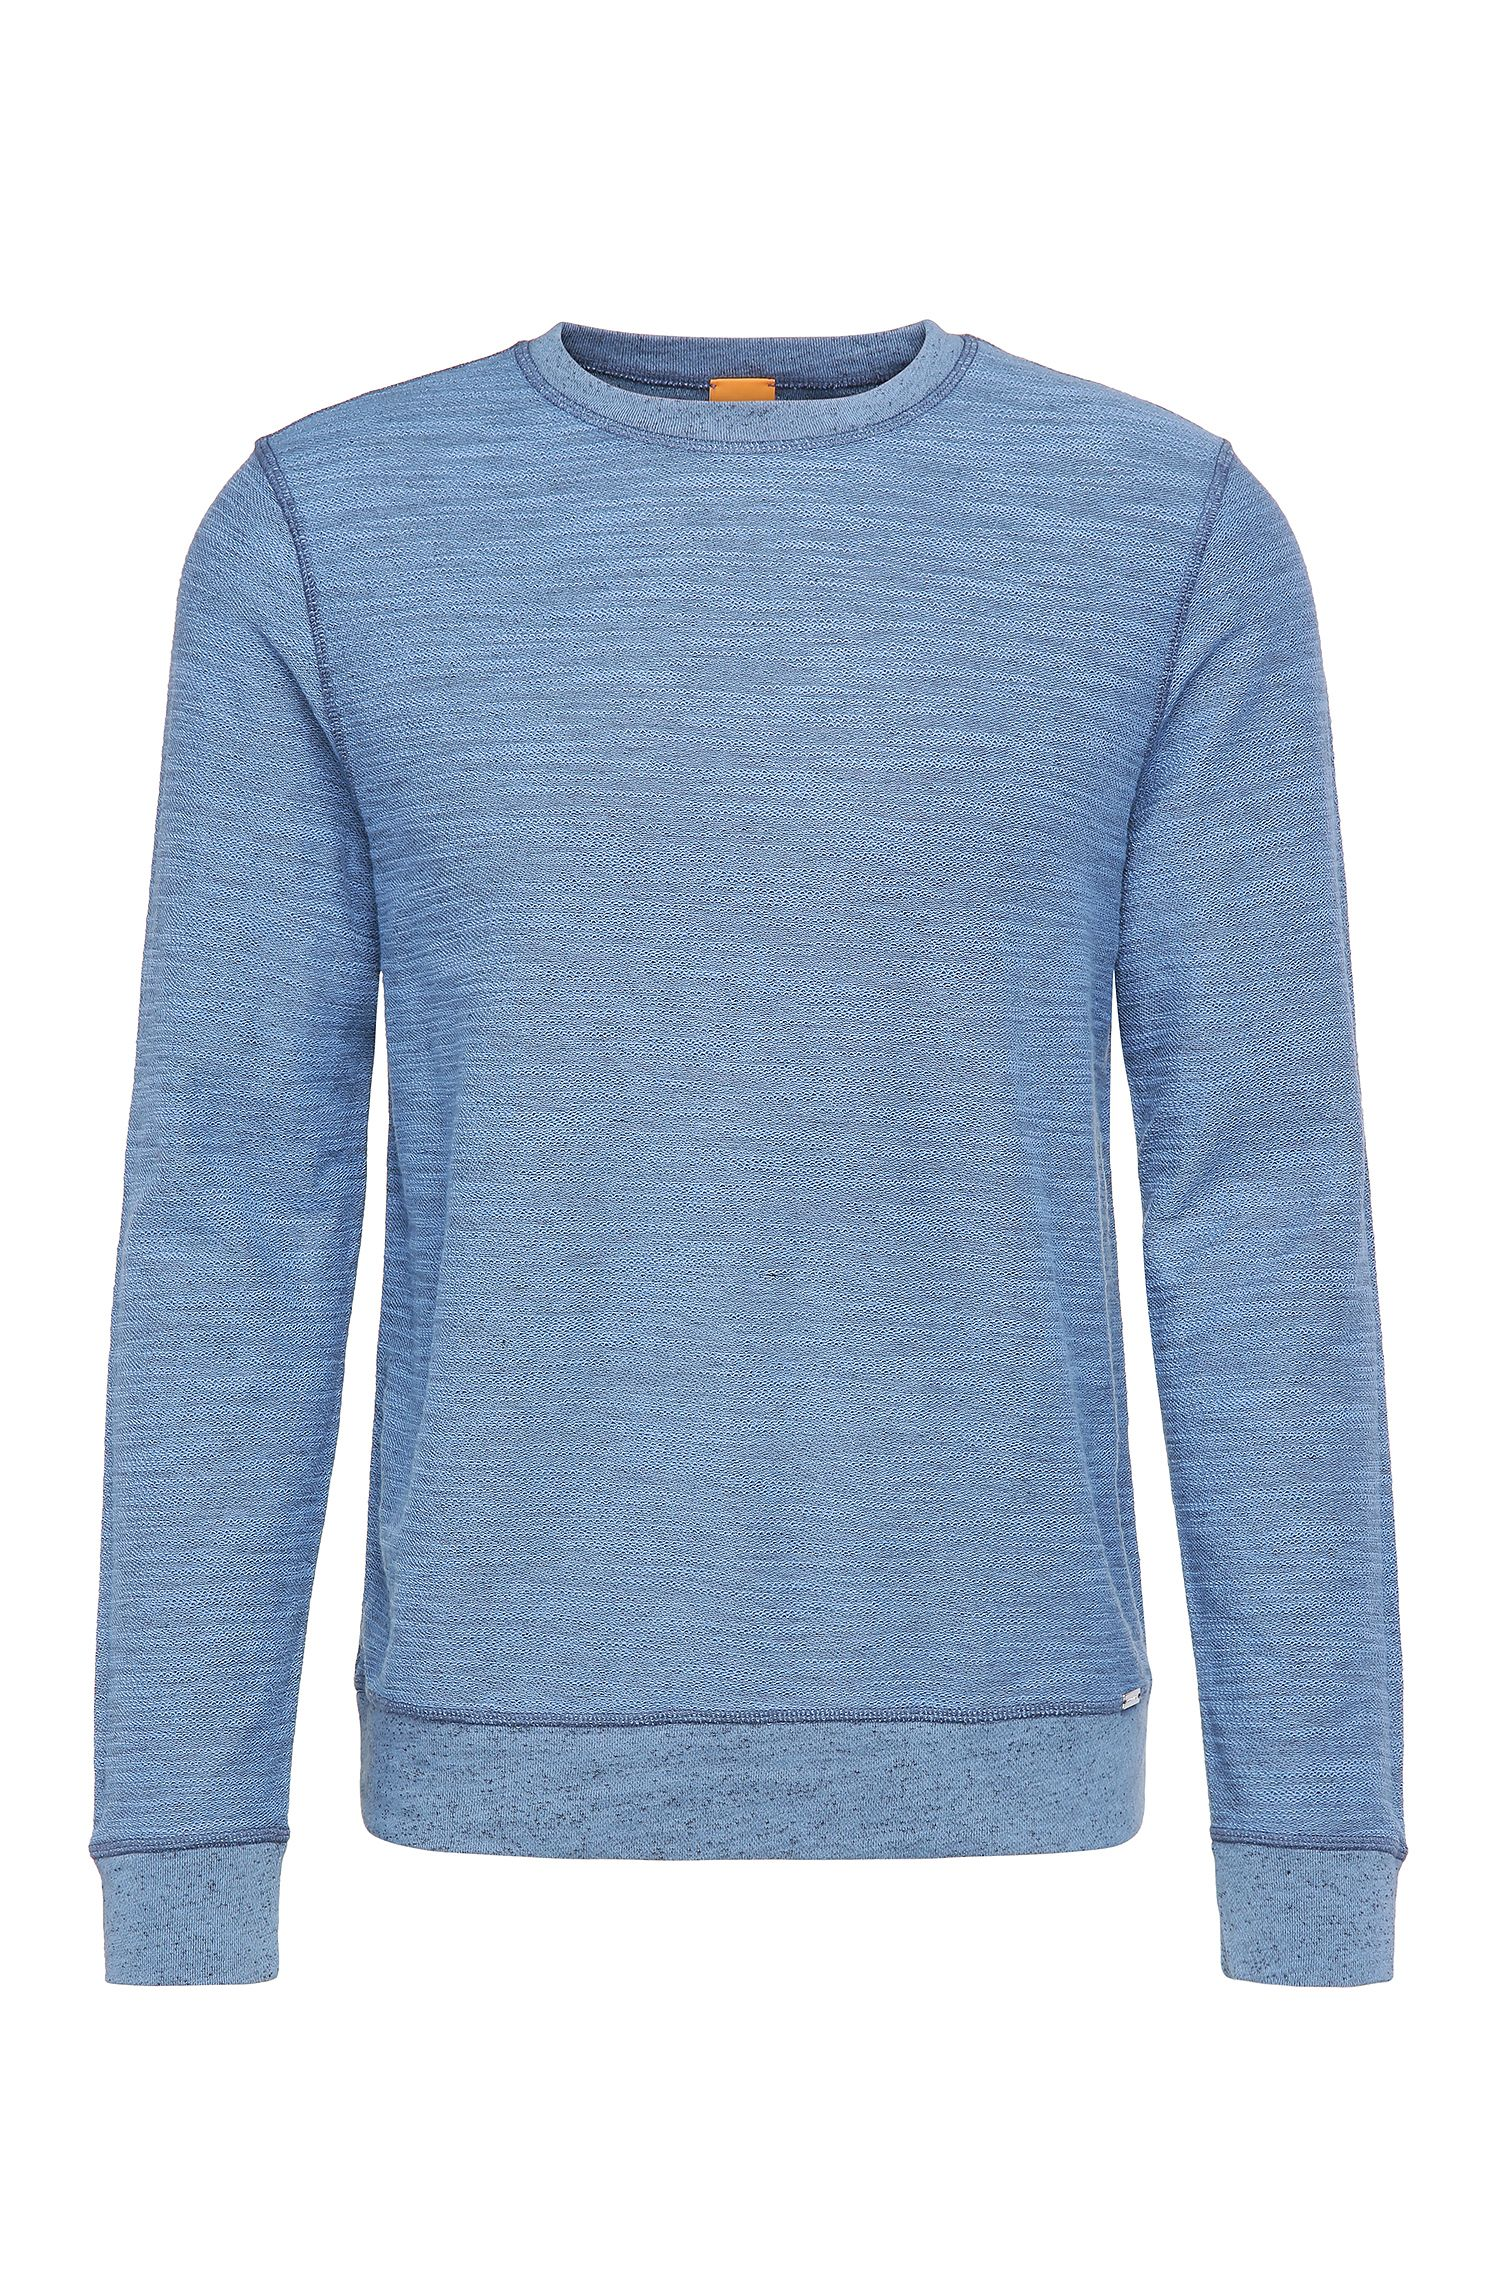 Relaxed-Fit Sweatshirt aus Baumwoll-Mix: ´Woice`